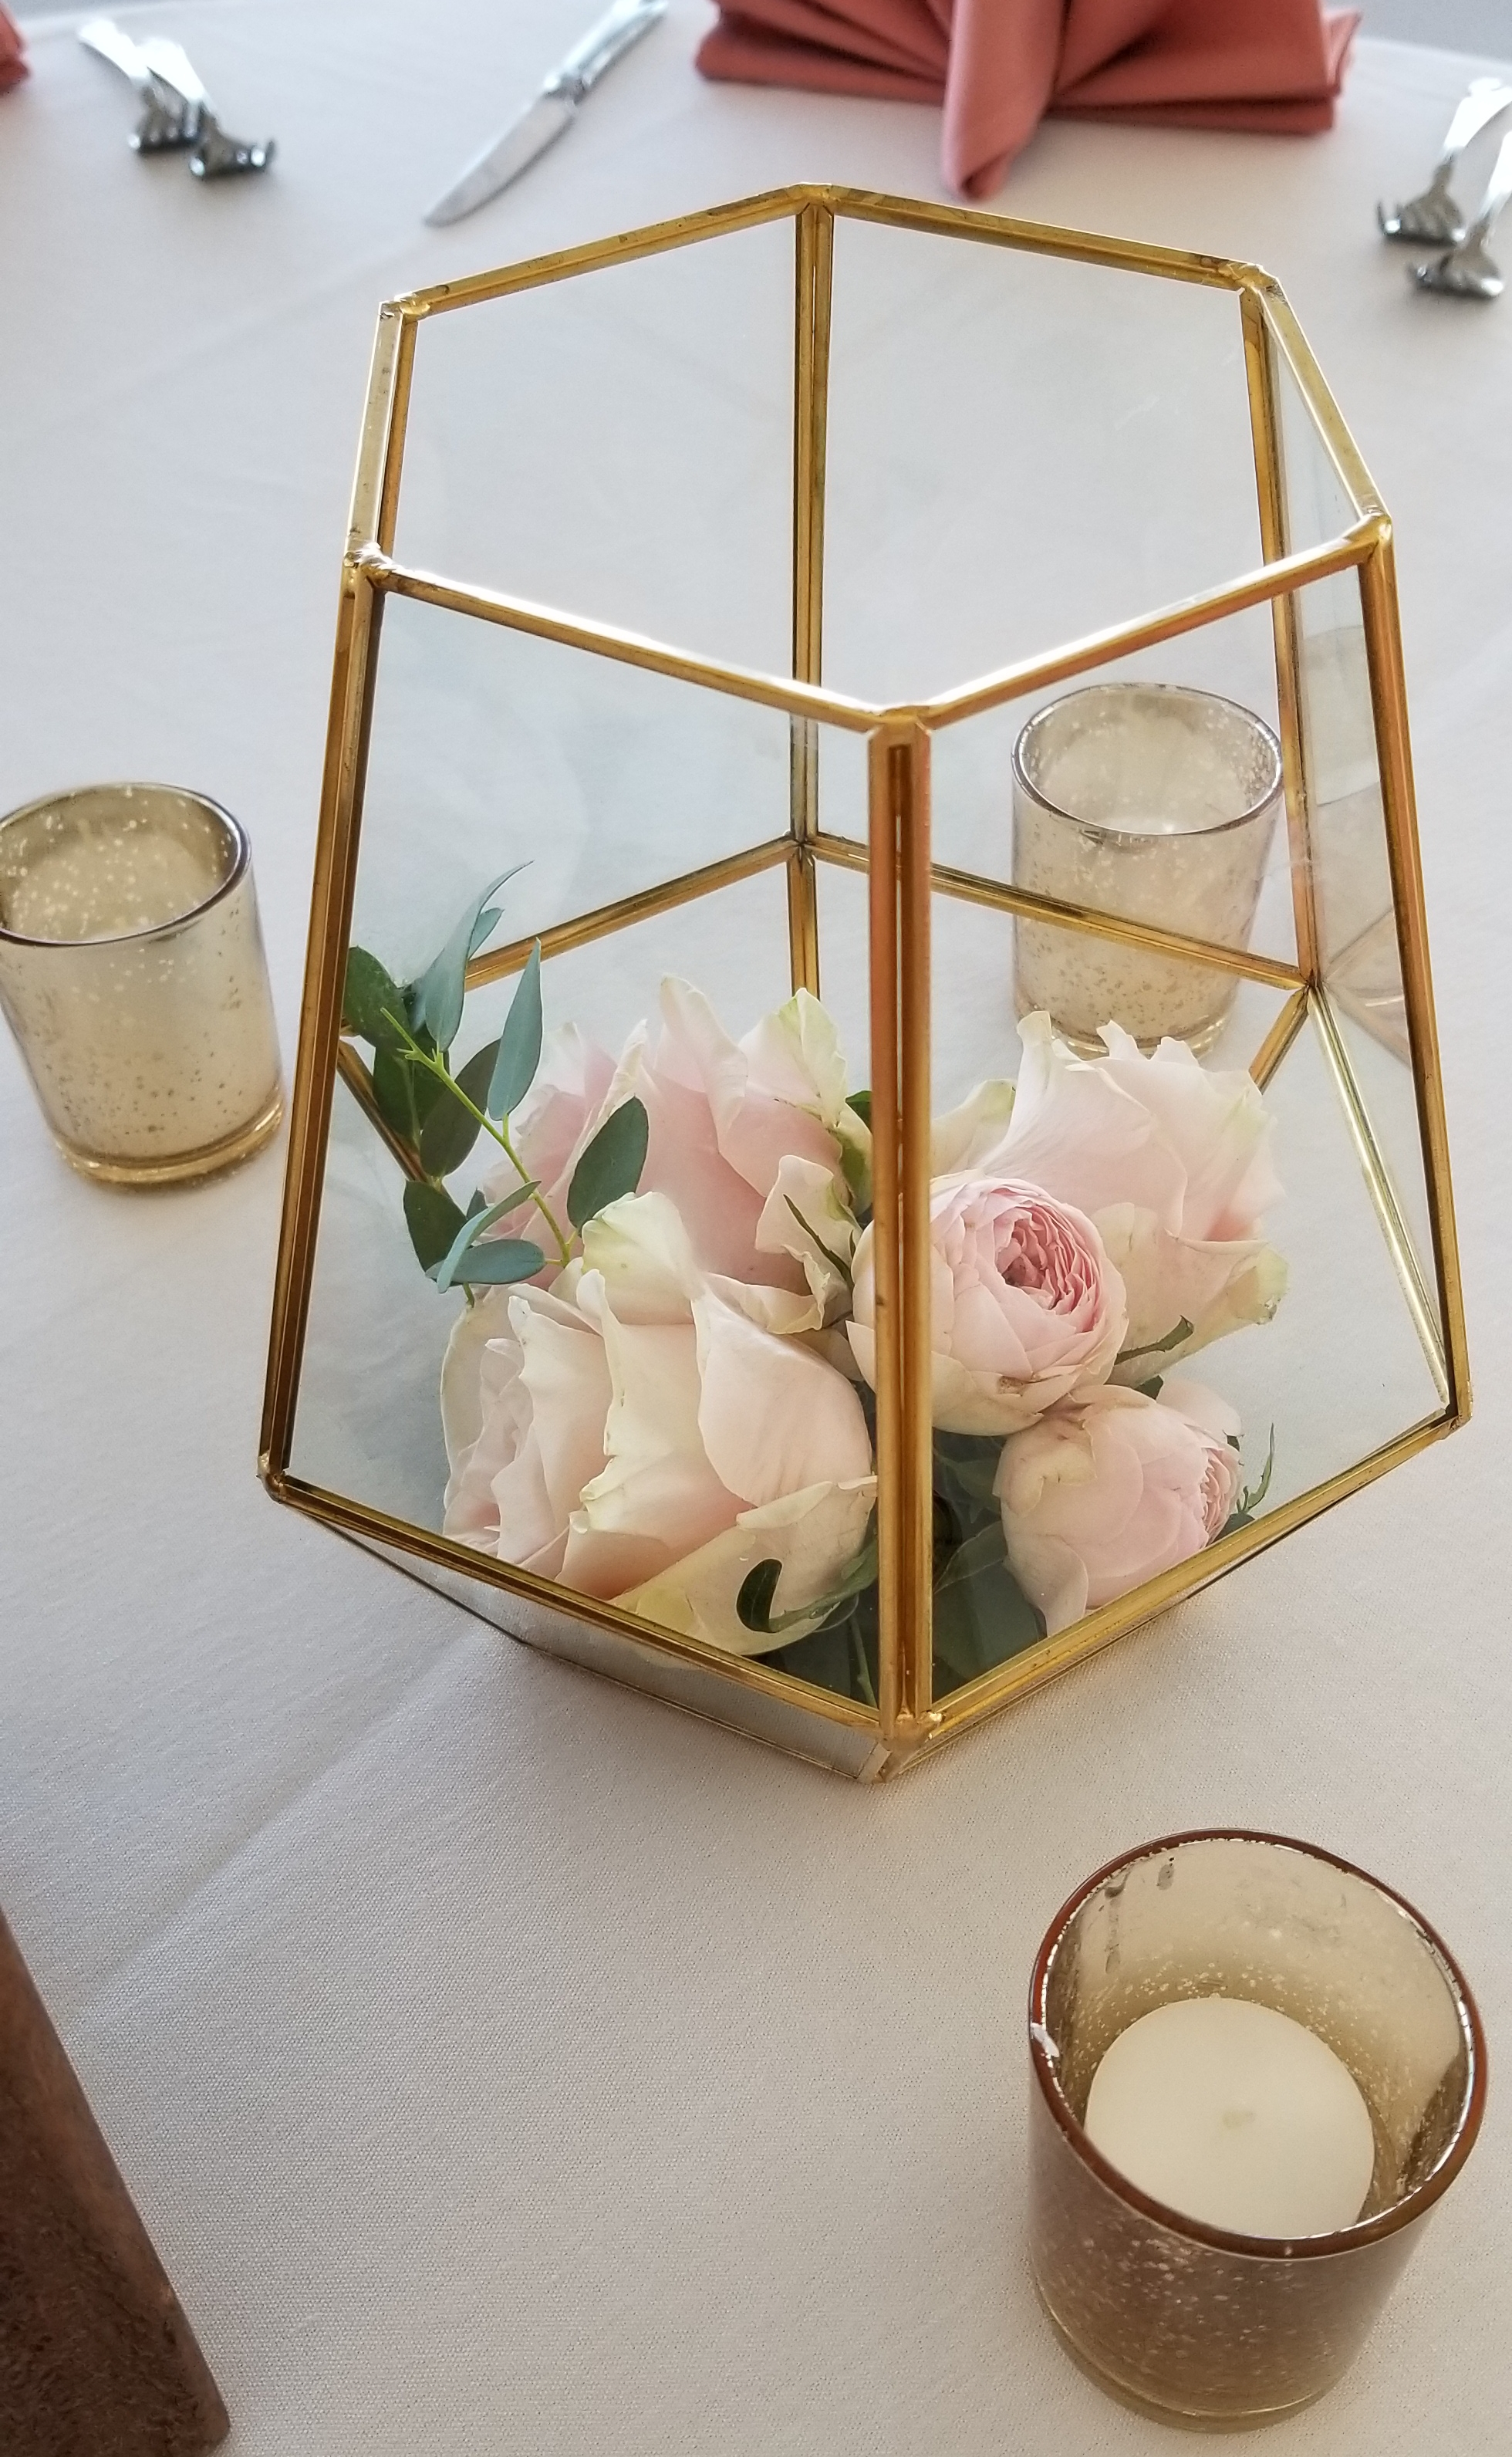 Clear terrarium centerpiece with blush pink flowers  featuring ranunculus and garden roses, and a sprig of greenery surrounded by gold mercury candles. Eagle Vines Golf Club.